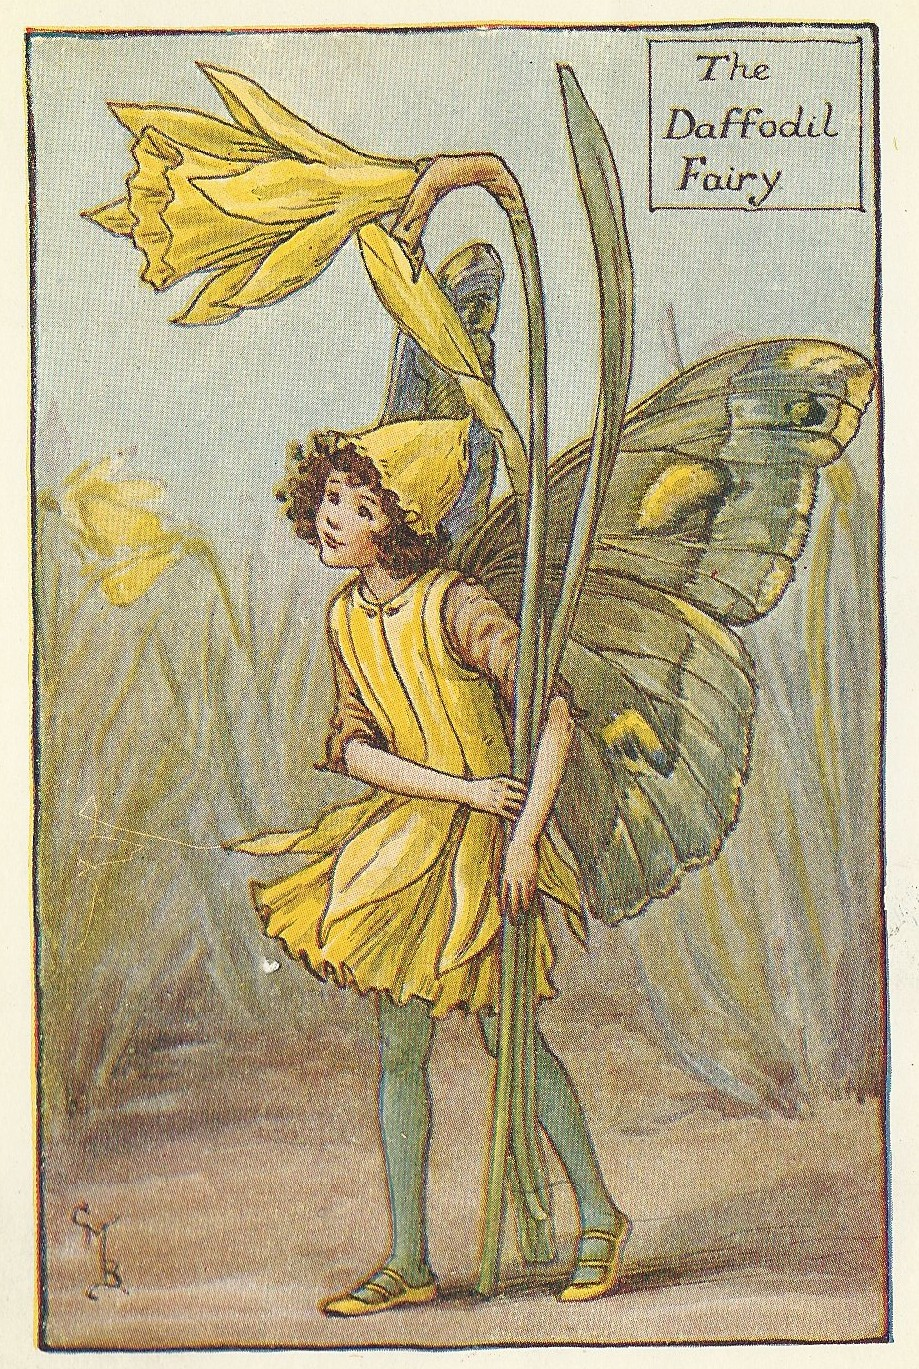 Daffodil Spring Fairy collectable vintage print